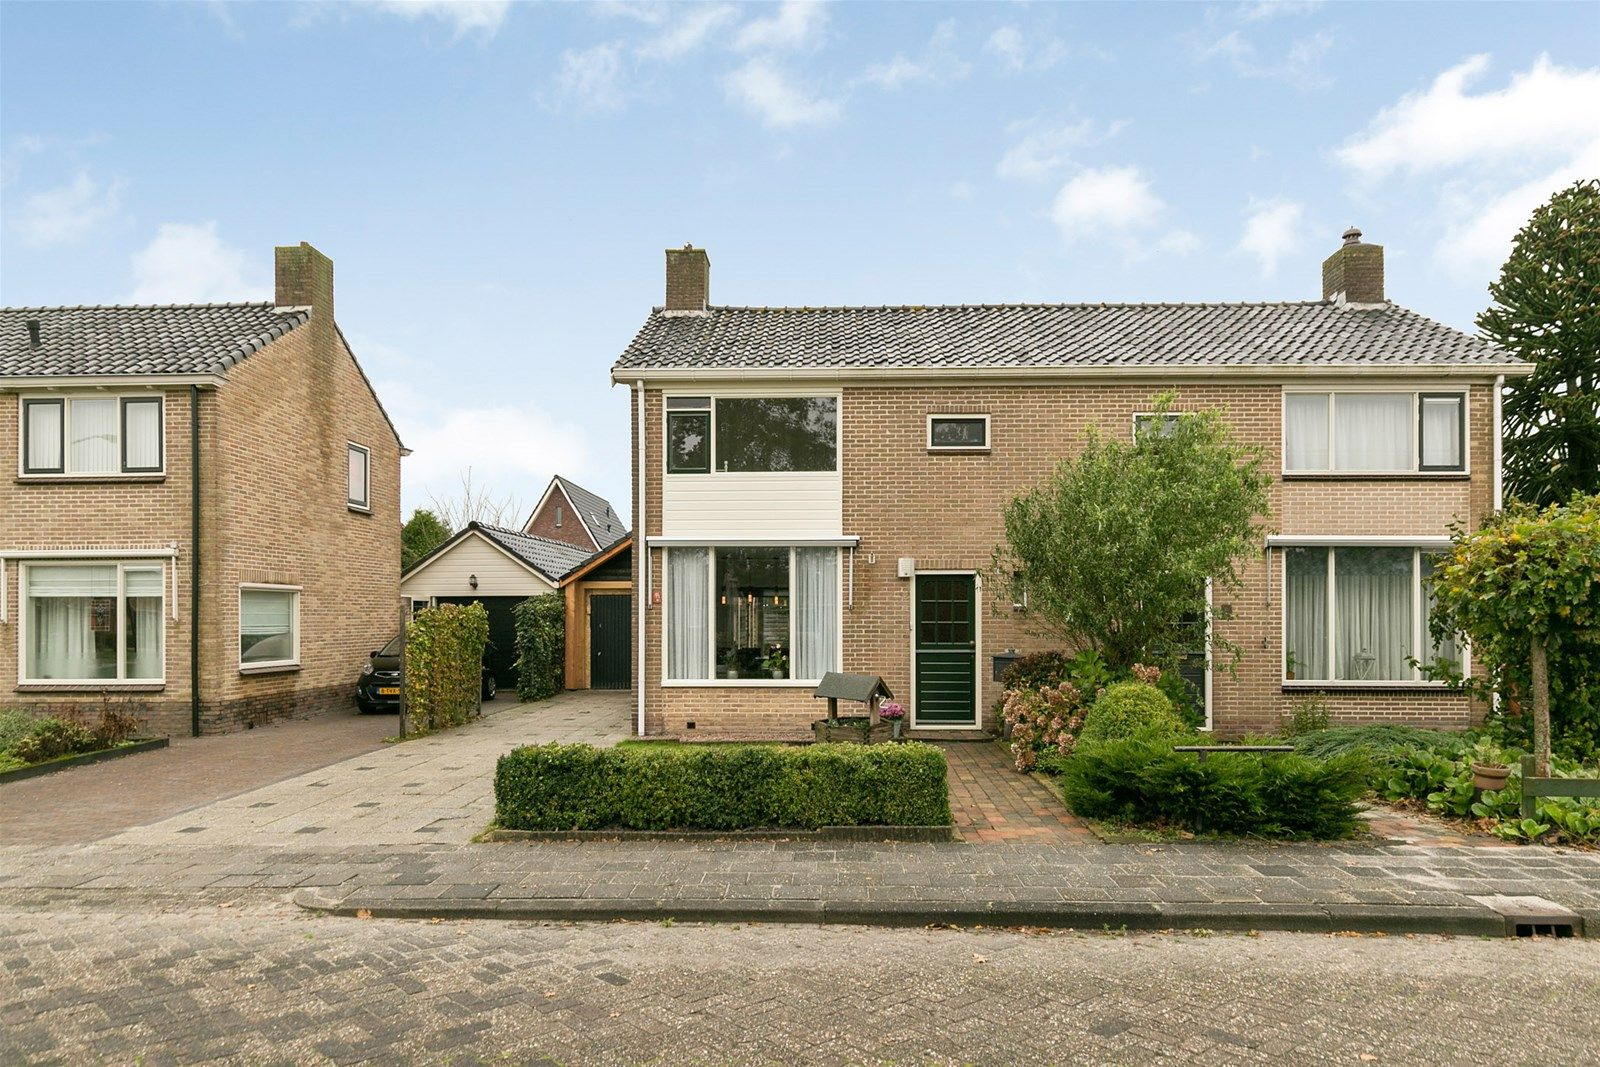 Goldbergsingel 22, Leek